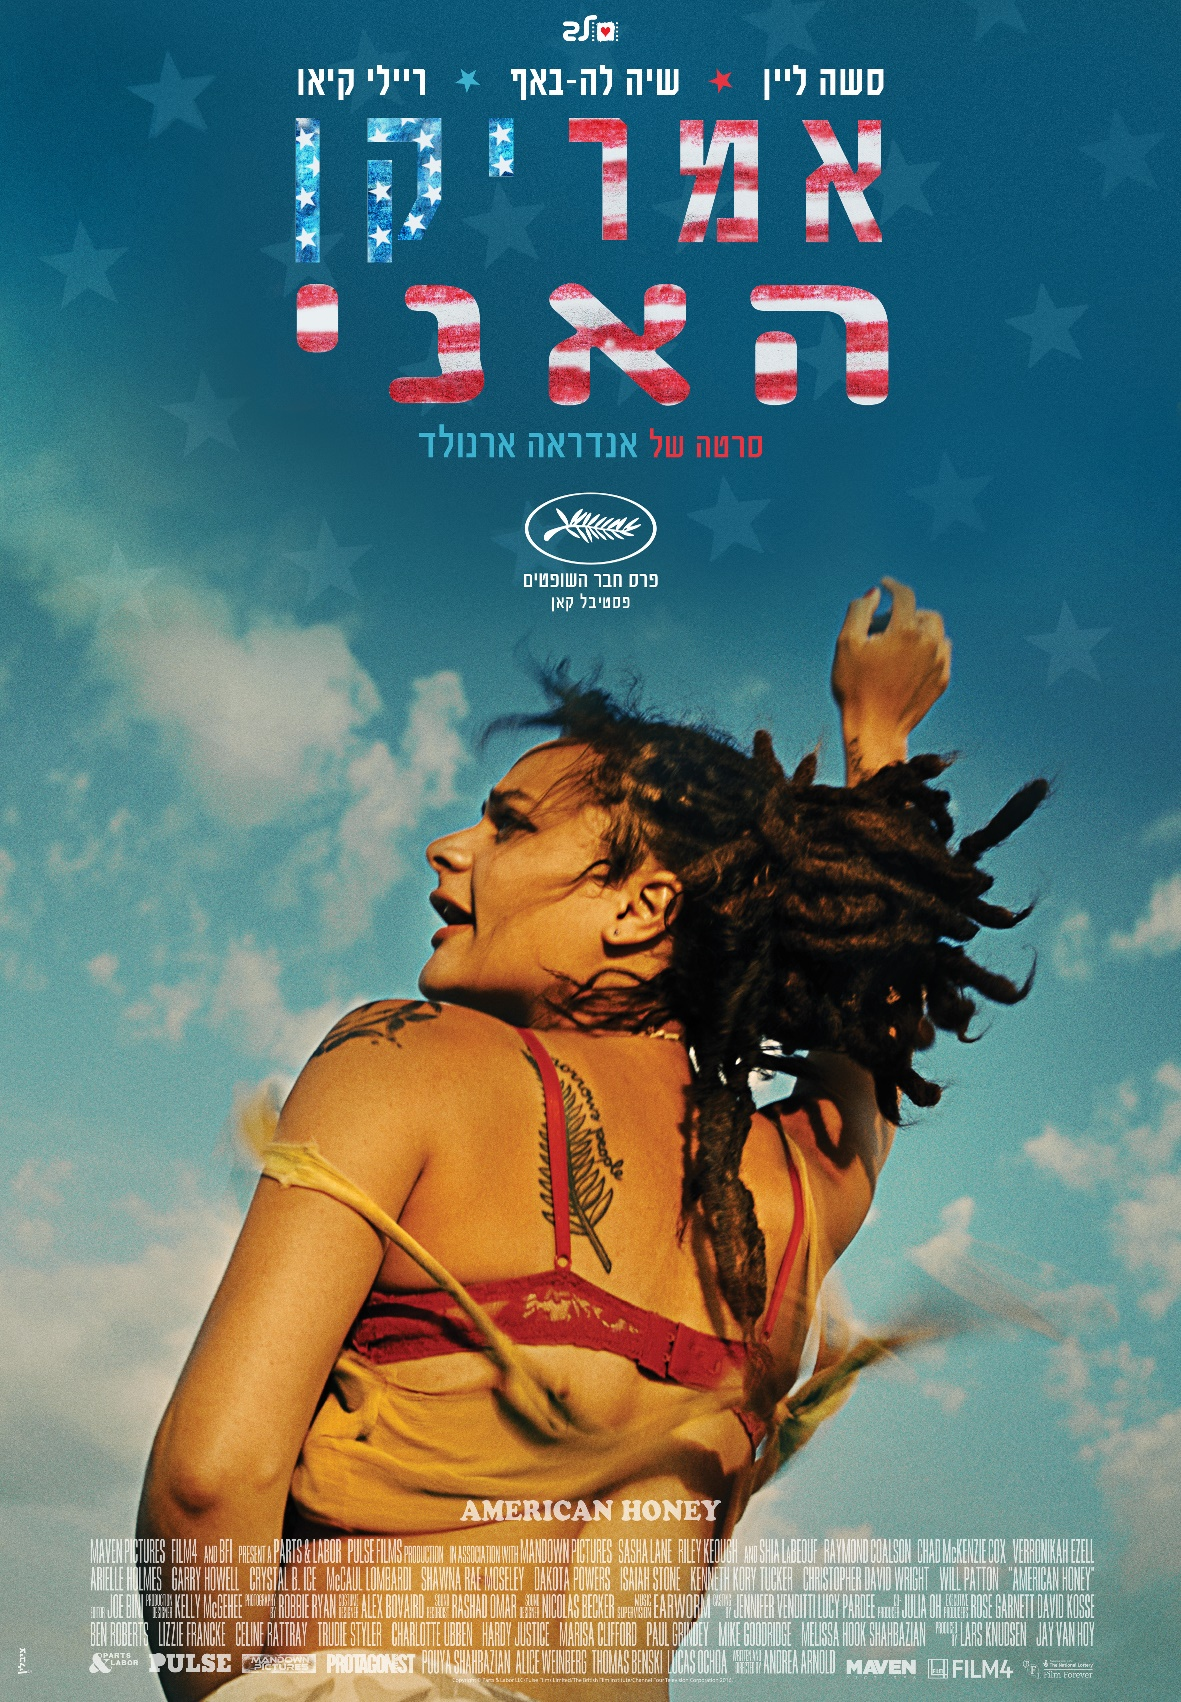 9213-AMERICAN HONEY POSTER_4.indd